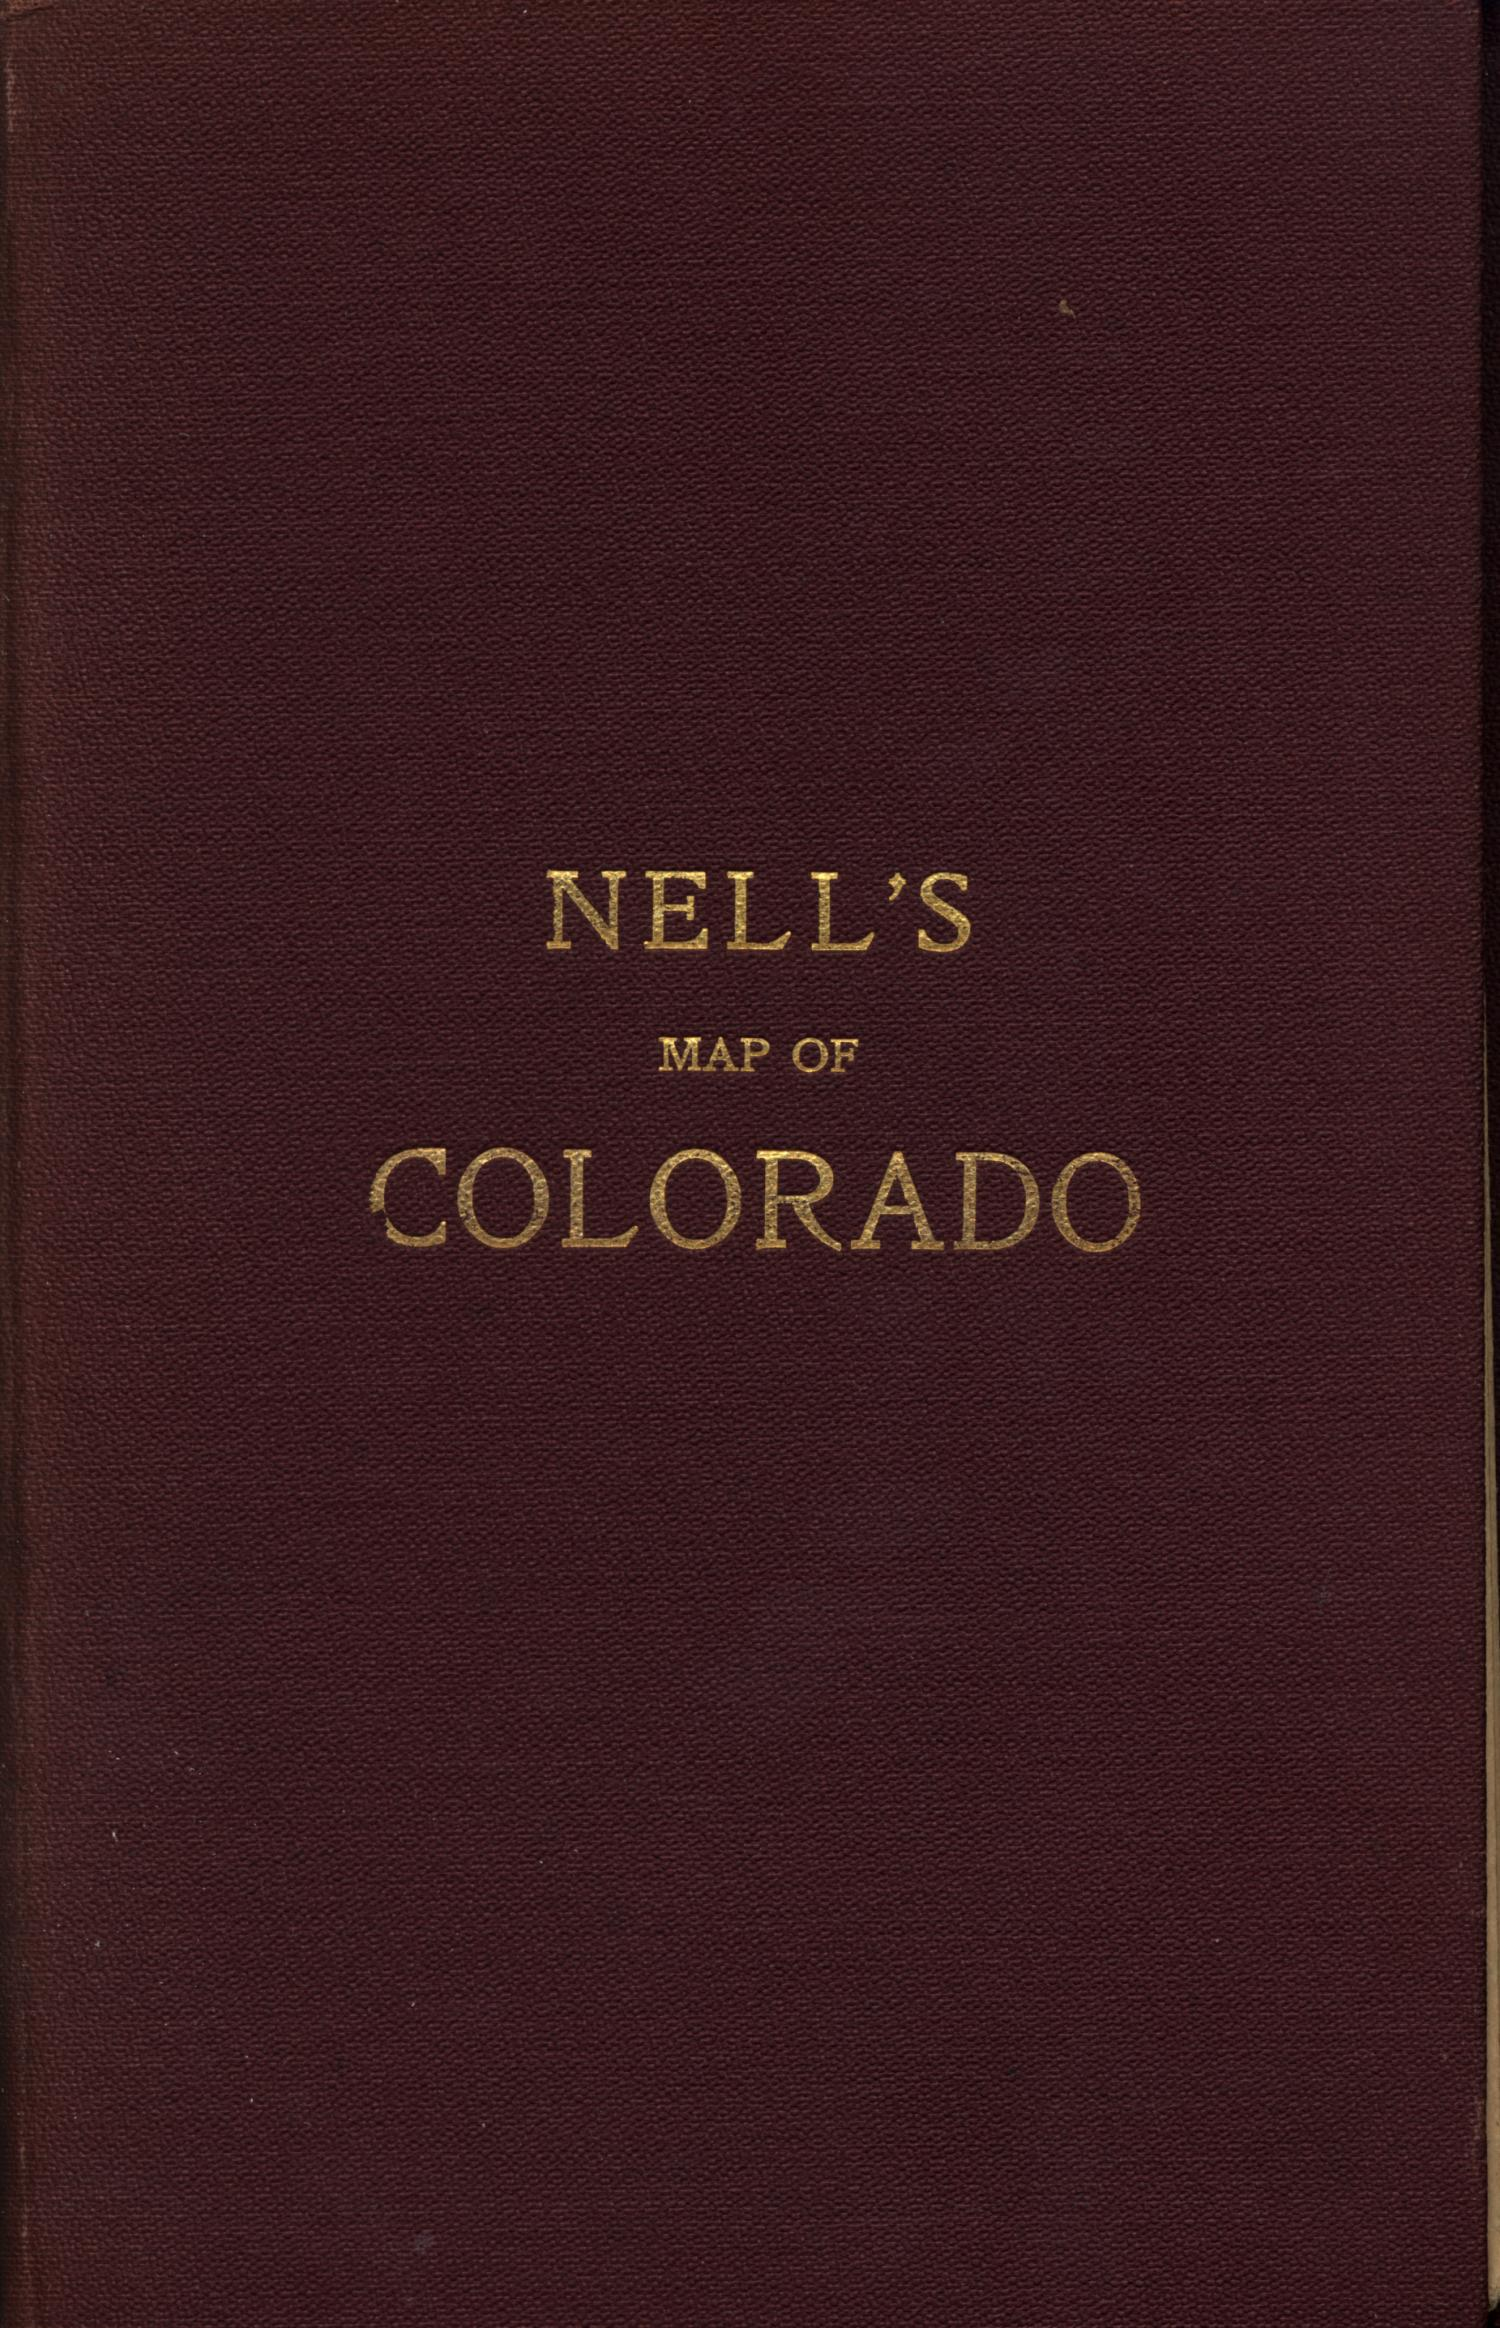 Nells topographical map of the state of Colorado [Accompanying Text]., Explanation and supporting information related to map that shows early twentieth century Colorado township grid, counties, roads, railroads, reservoirs, forest reserves, Native American reservations, U.S. Land offices, canals, and notable physical features.,